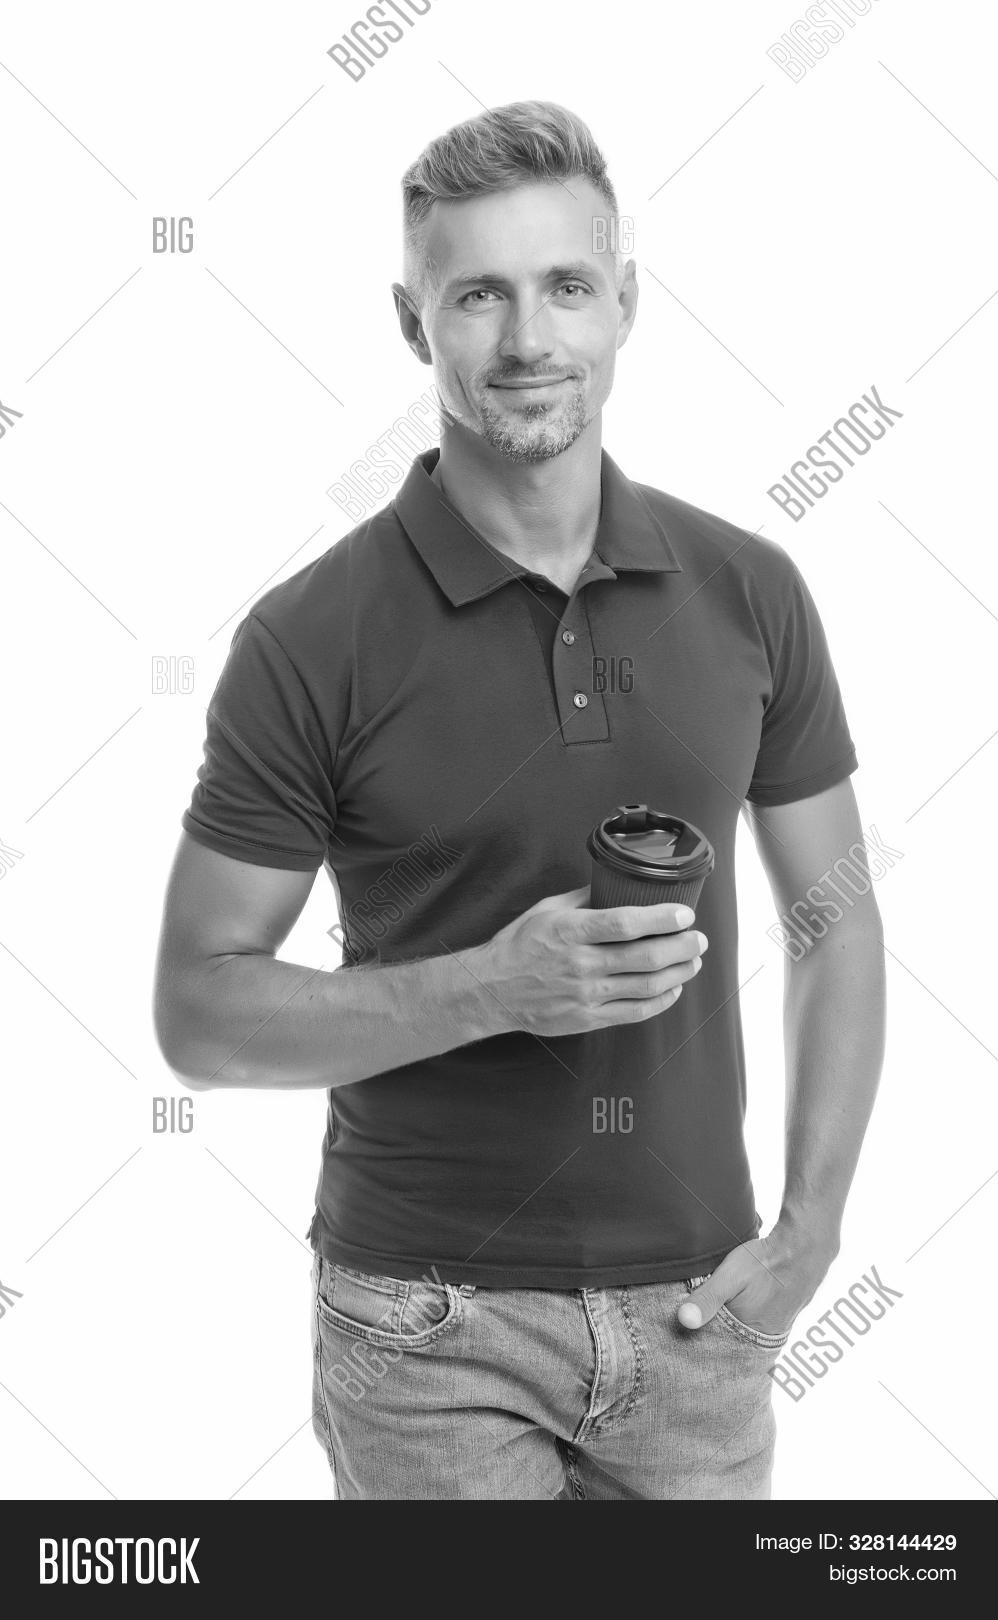 adult,away,background,break,cappuccino,casual,cocoa,coffee,concept,cup,delicious,drink,drinking,energy,enjoy,enjoying,fashion,fashionable,fresh,go,guy,handsome,hipster,his,hold,it,lifestyle,macho,male,man,masculinity,mature,mustache,outfit,paper,prefer,relaxing,reloading,rest,season,stand,stylish,take,tea,unshaven,water,white